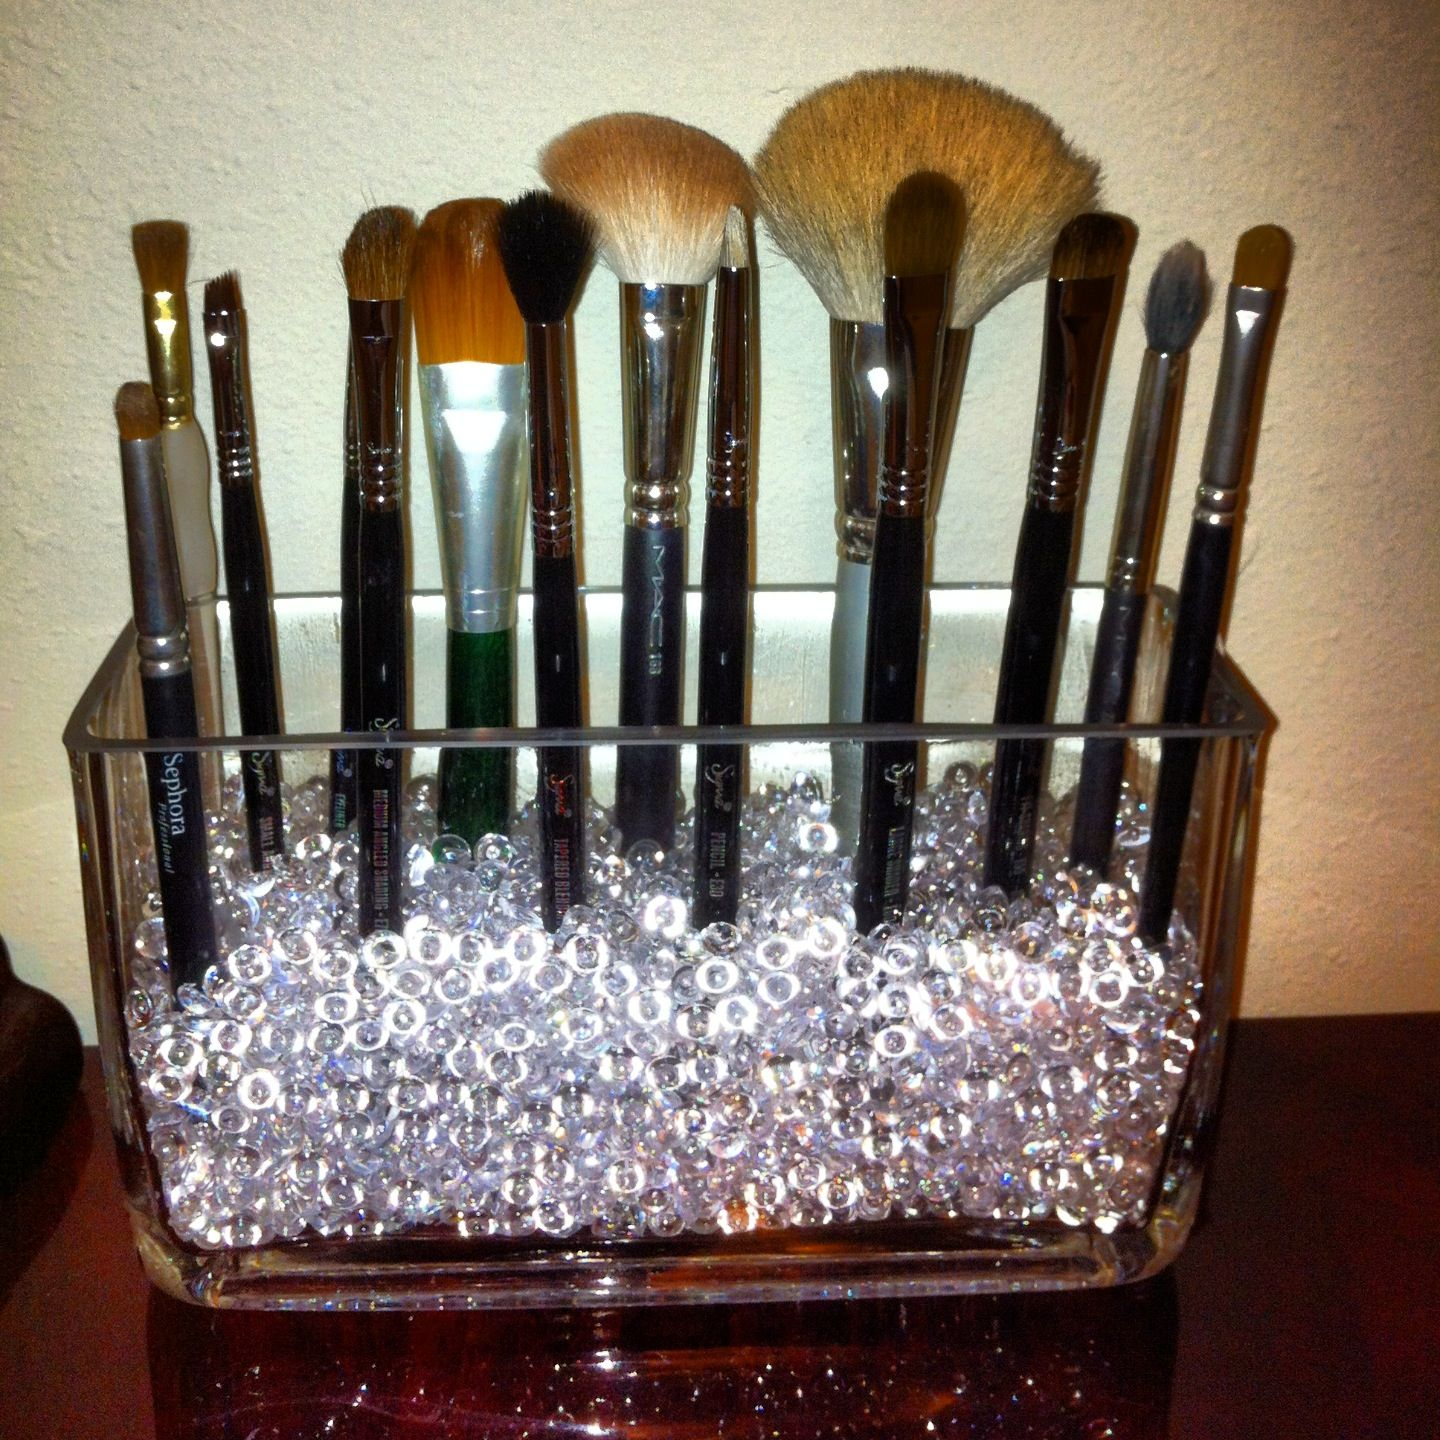 DIY makeup brush holder | Health & Beauty | Pinterest